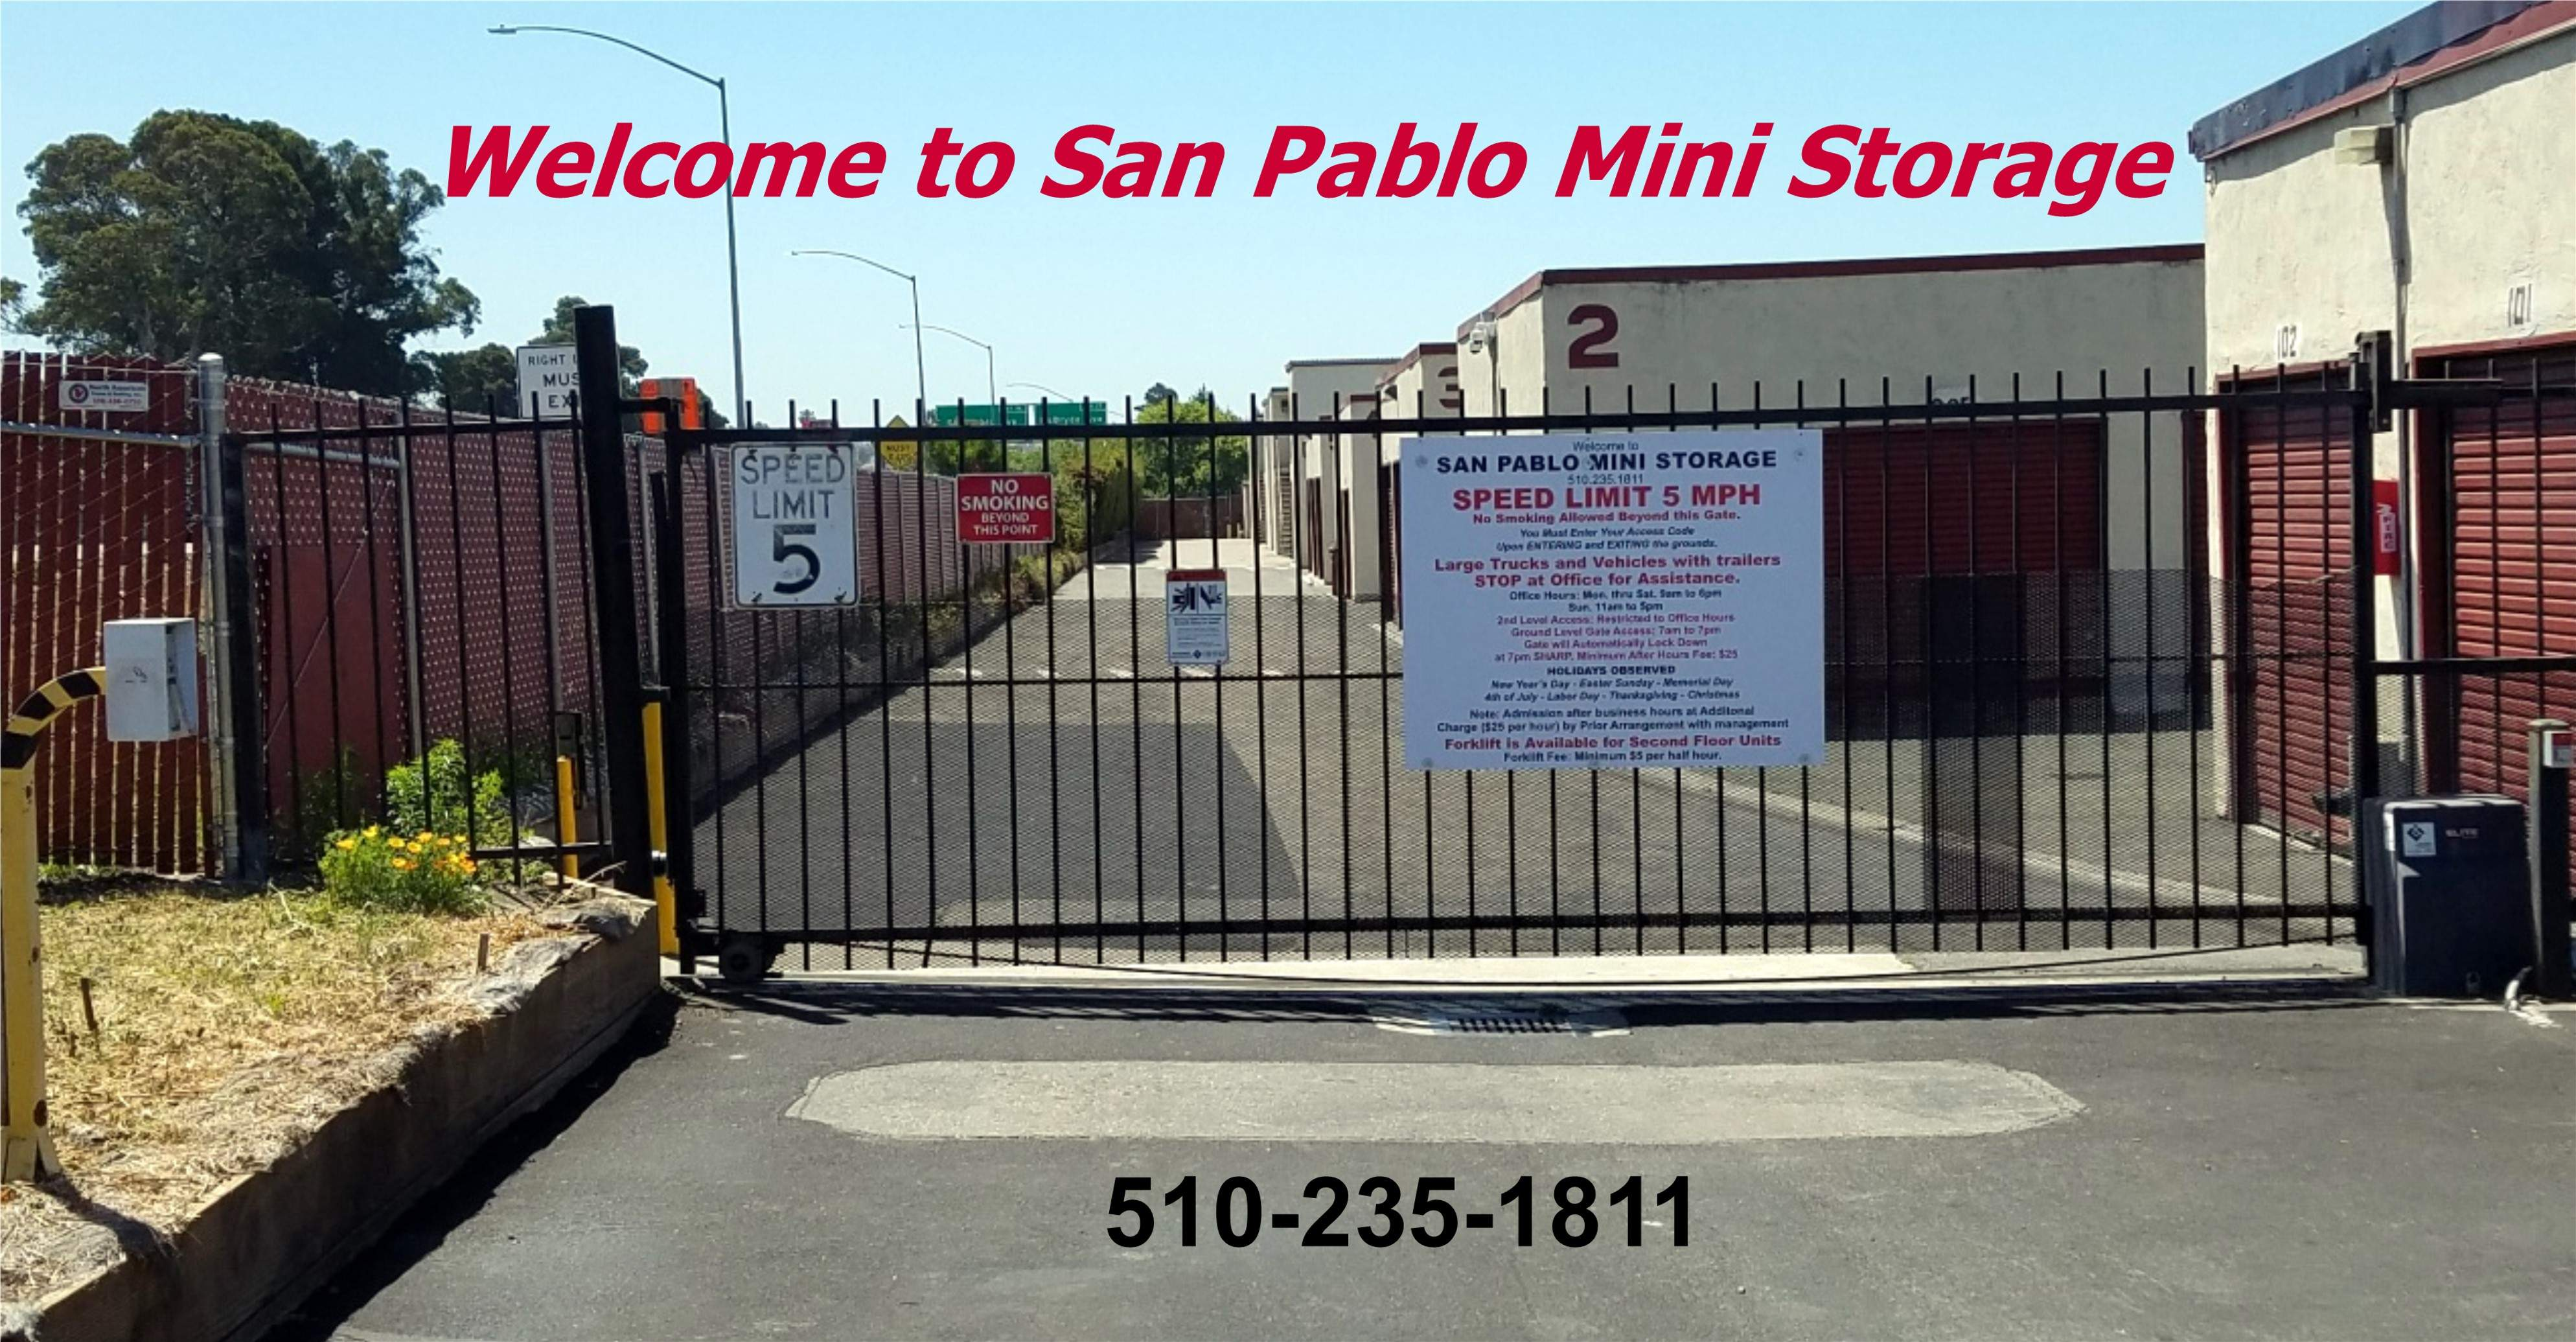 San Pablo Mini Storage Gate